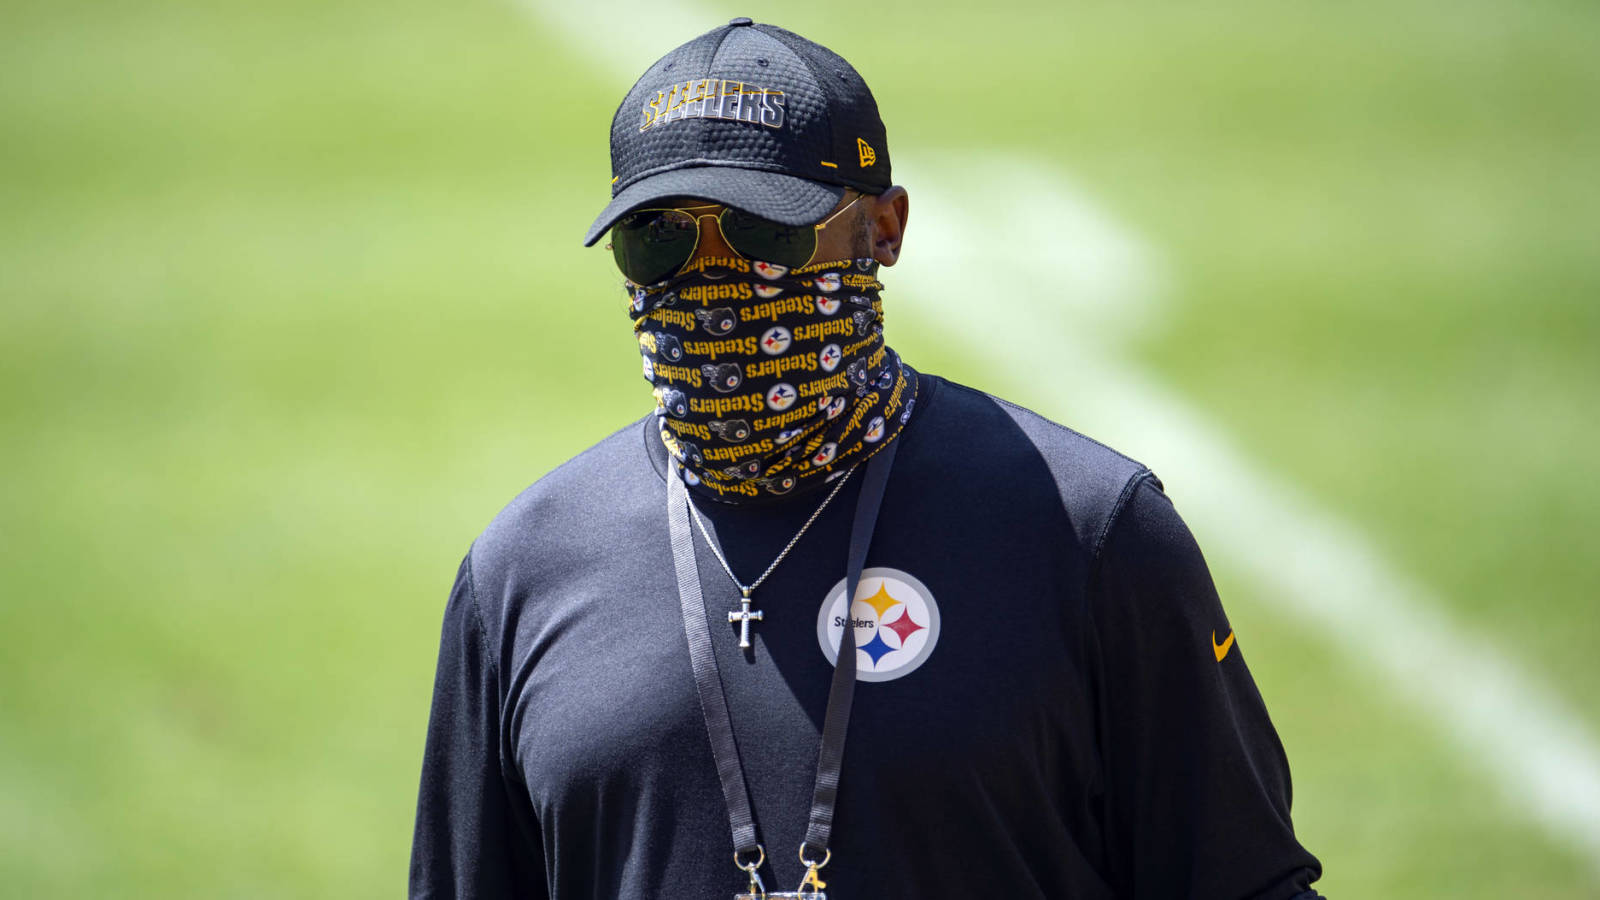 Report: Steelers head coach Mike Tomlin diagnosed with COVID-19